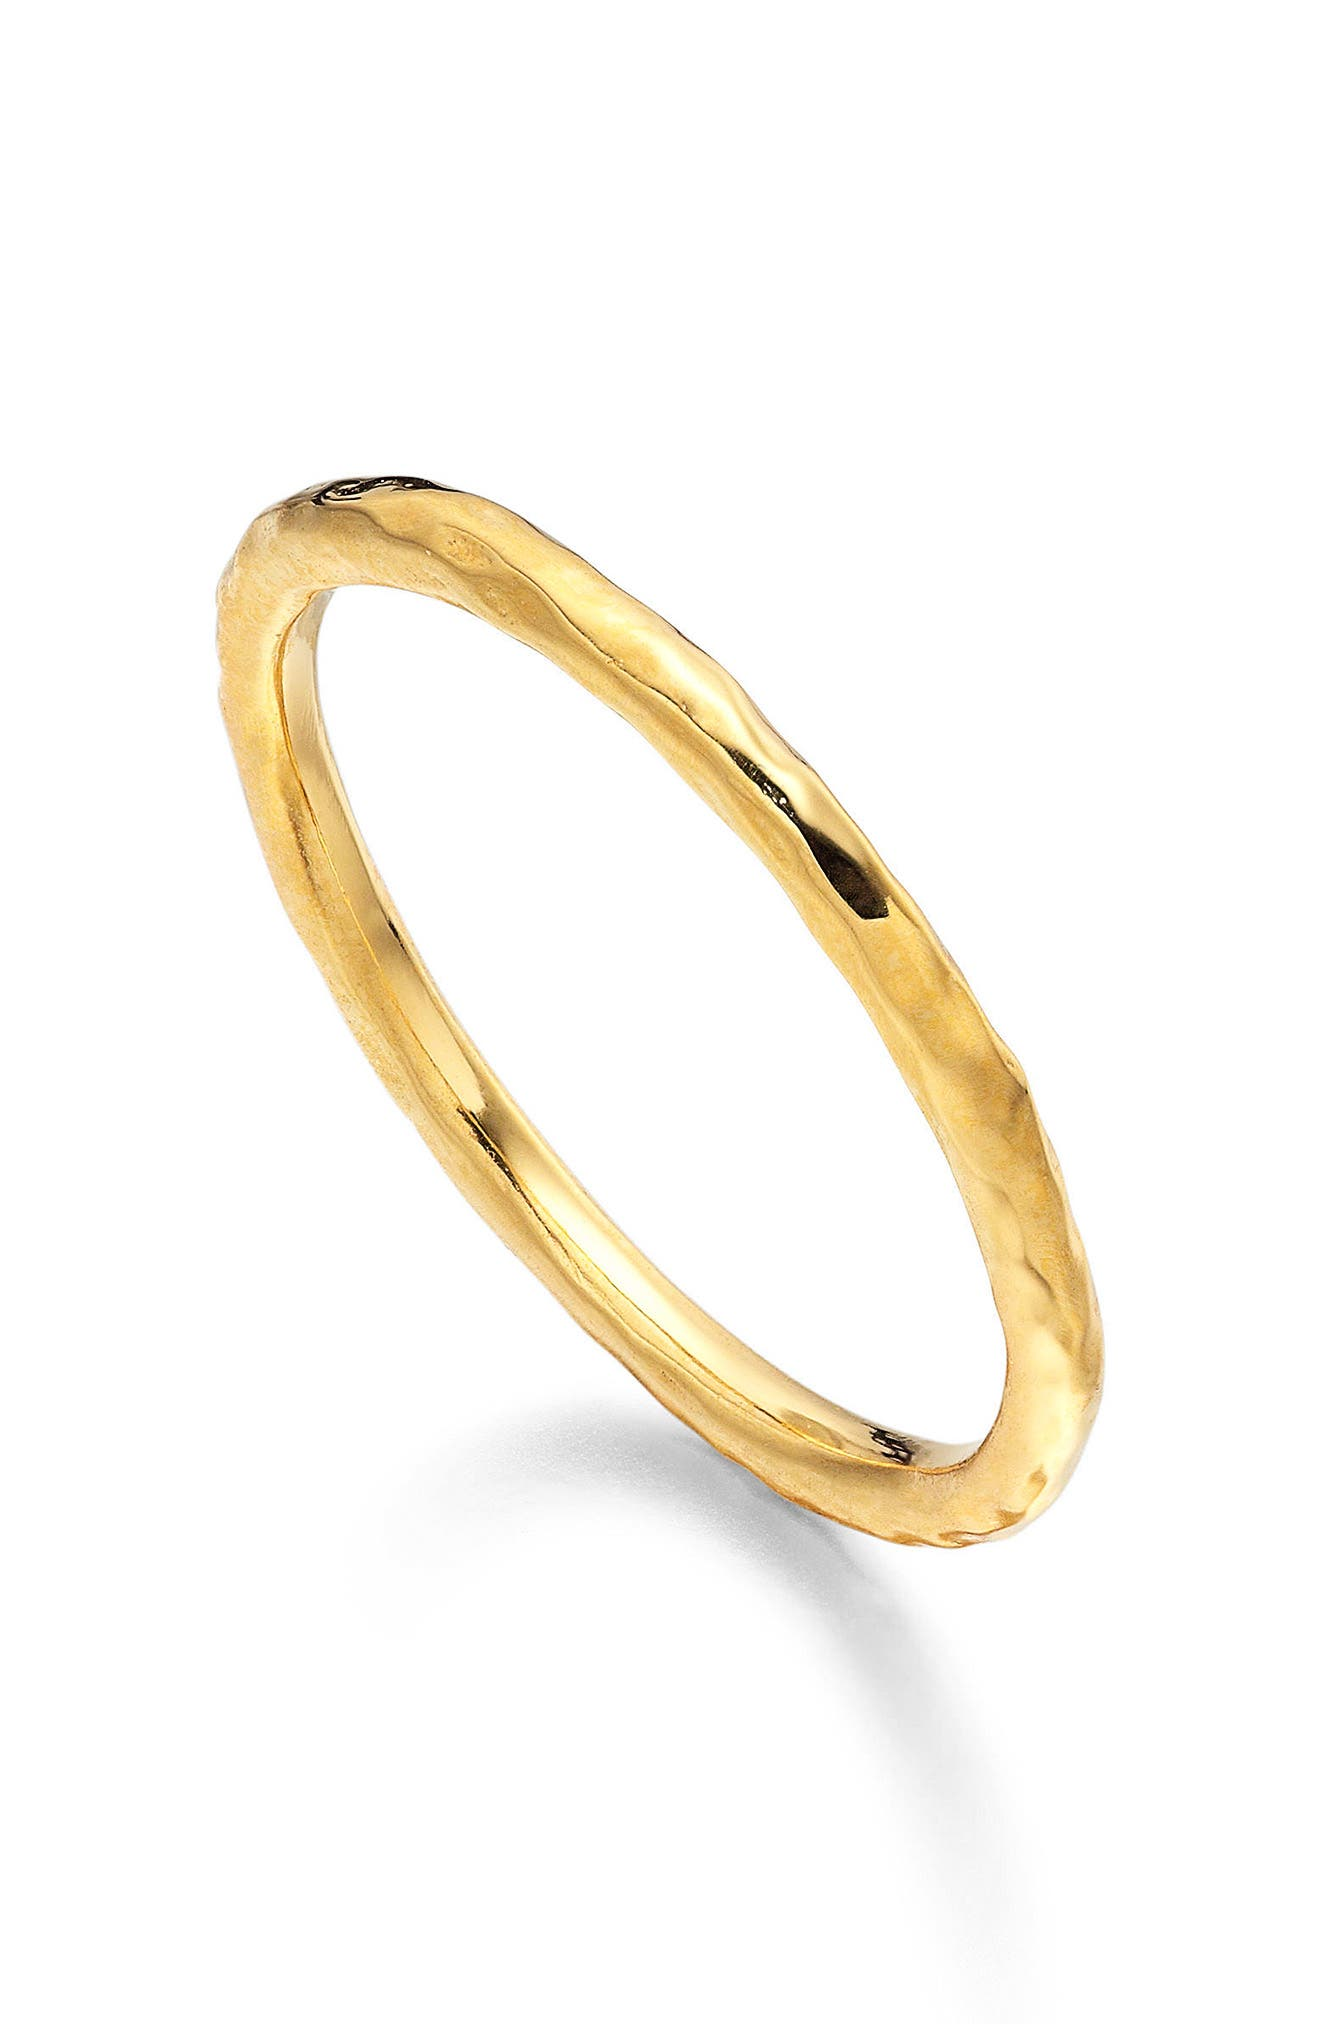 MONICA VINADER, Siren Hammered Ring, Main thumbnail 1, color, GOLD